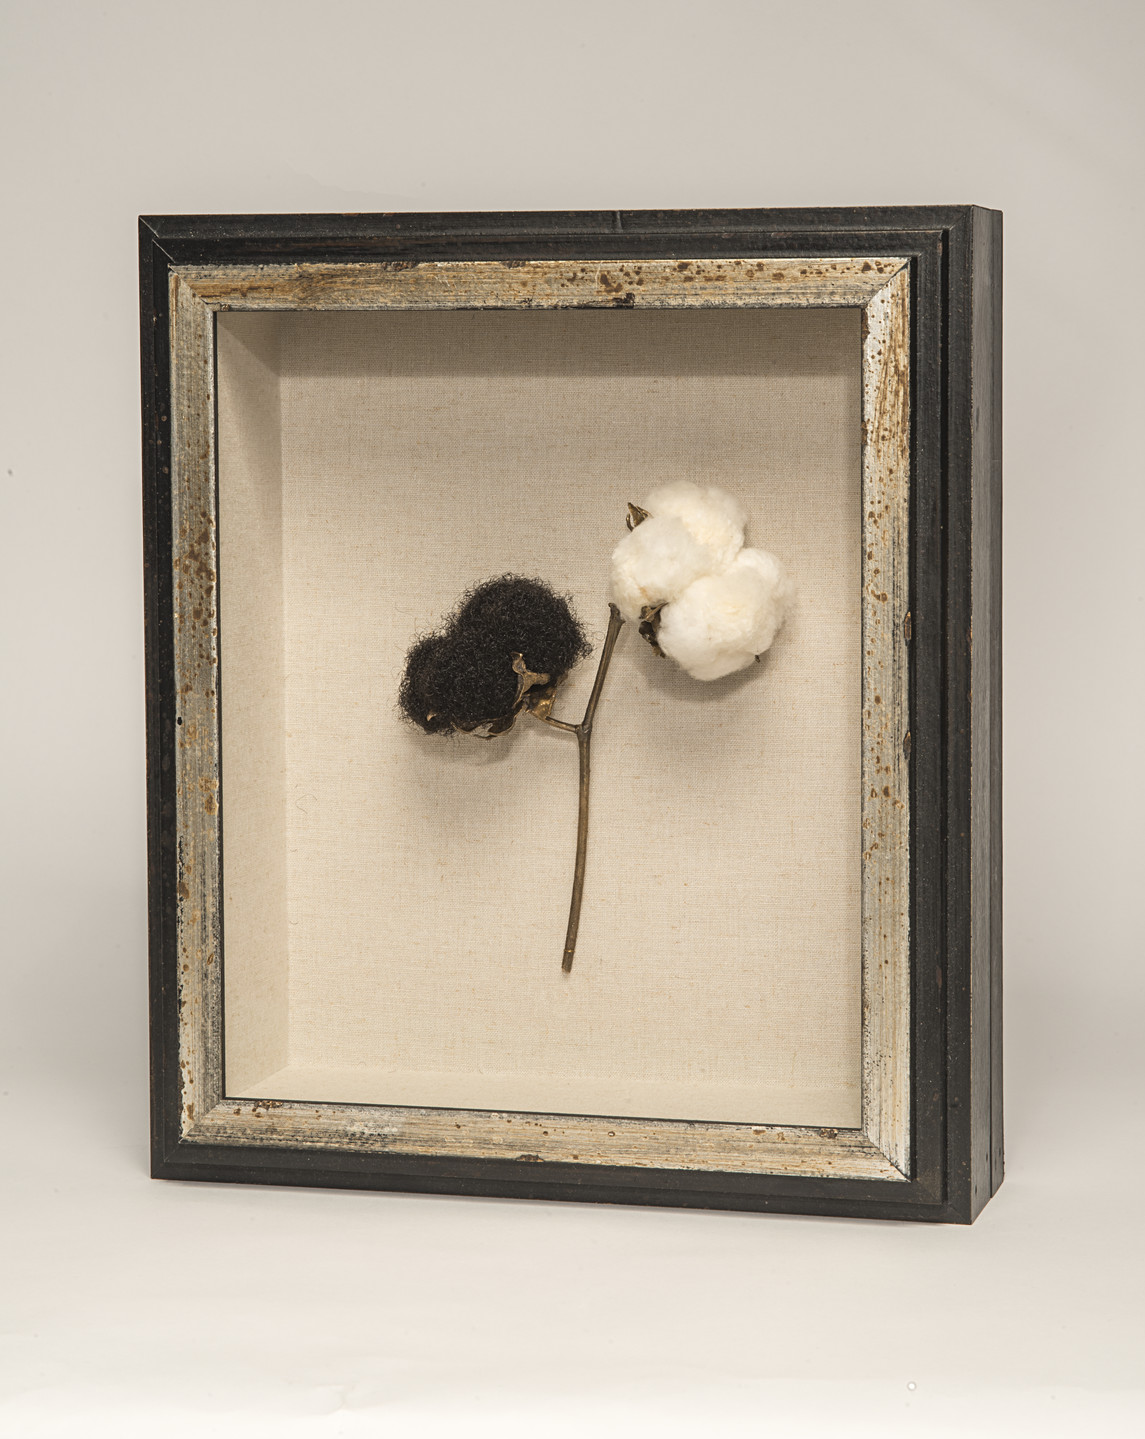 A framed sculpture of a branch of a cotton plant. The stem of the plant is bronze, and leads to two bolls at its top. The right boll is made of two cotton, while the left boll is made of black hair.